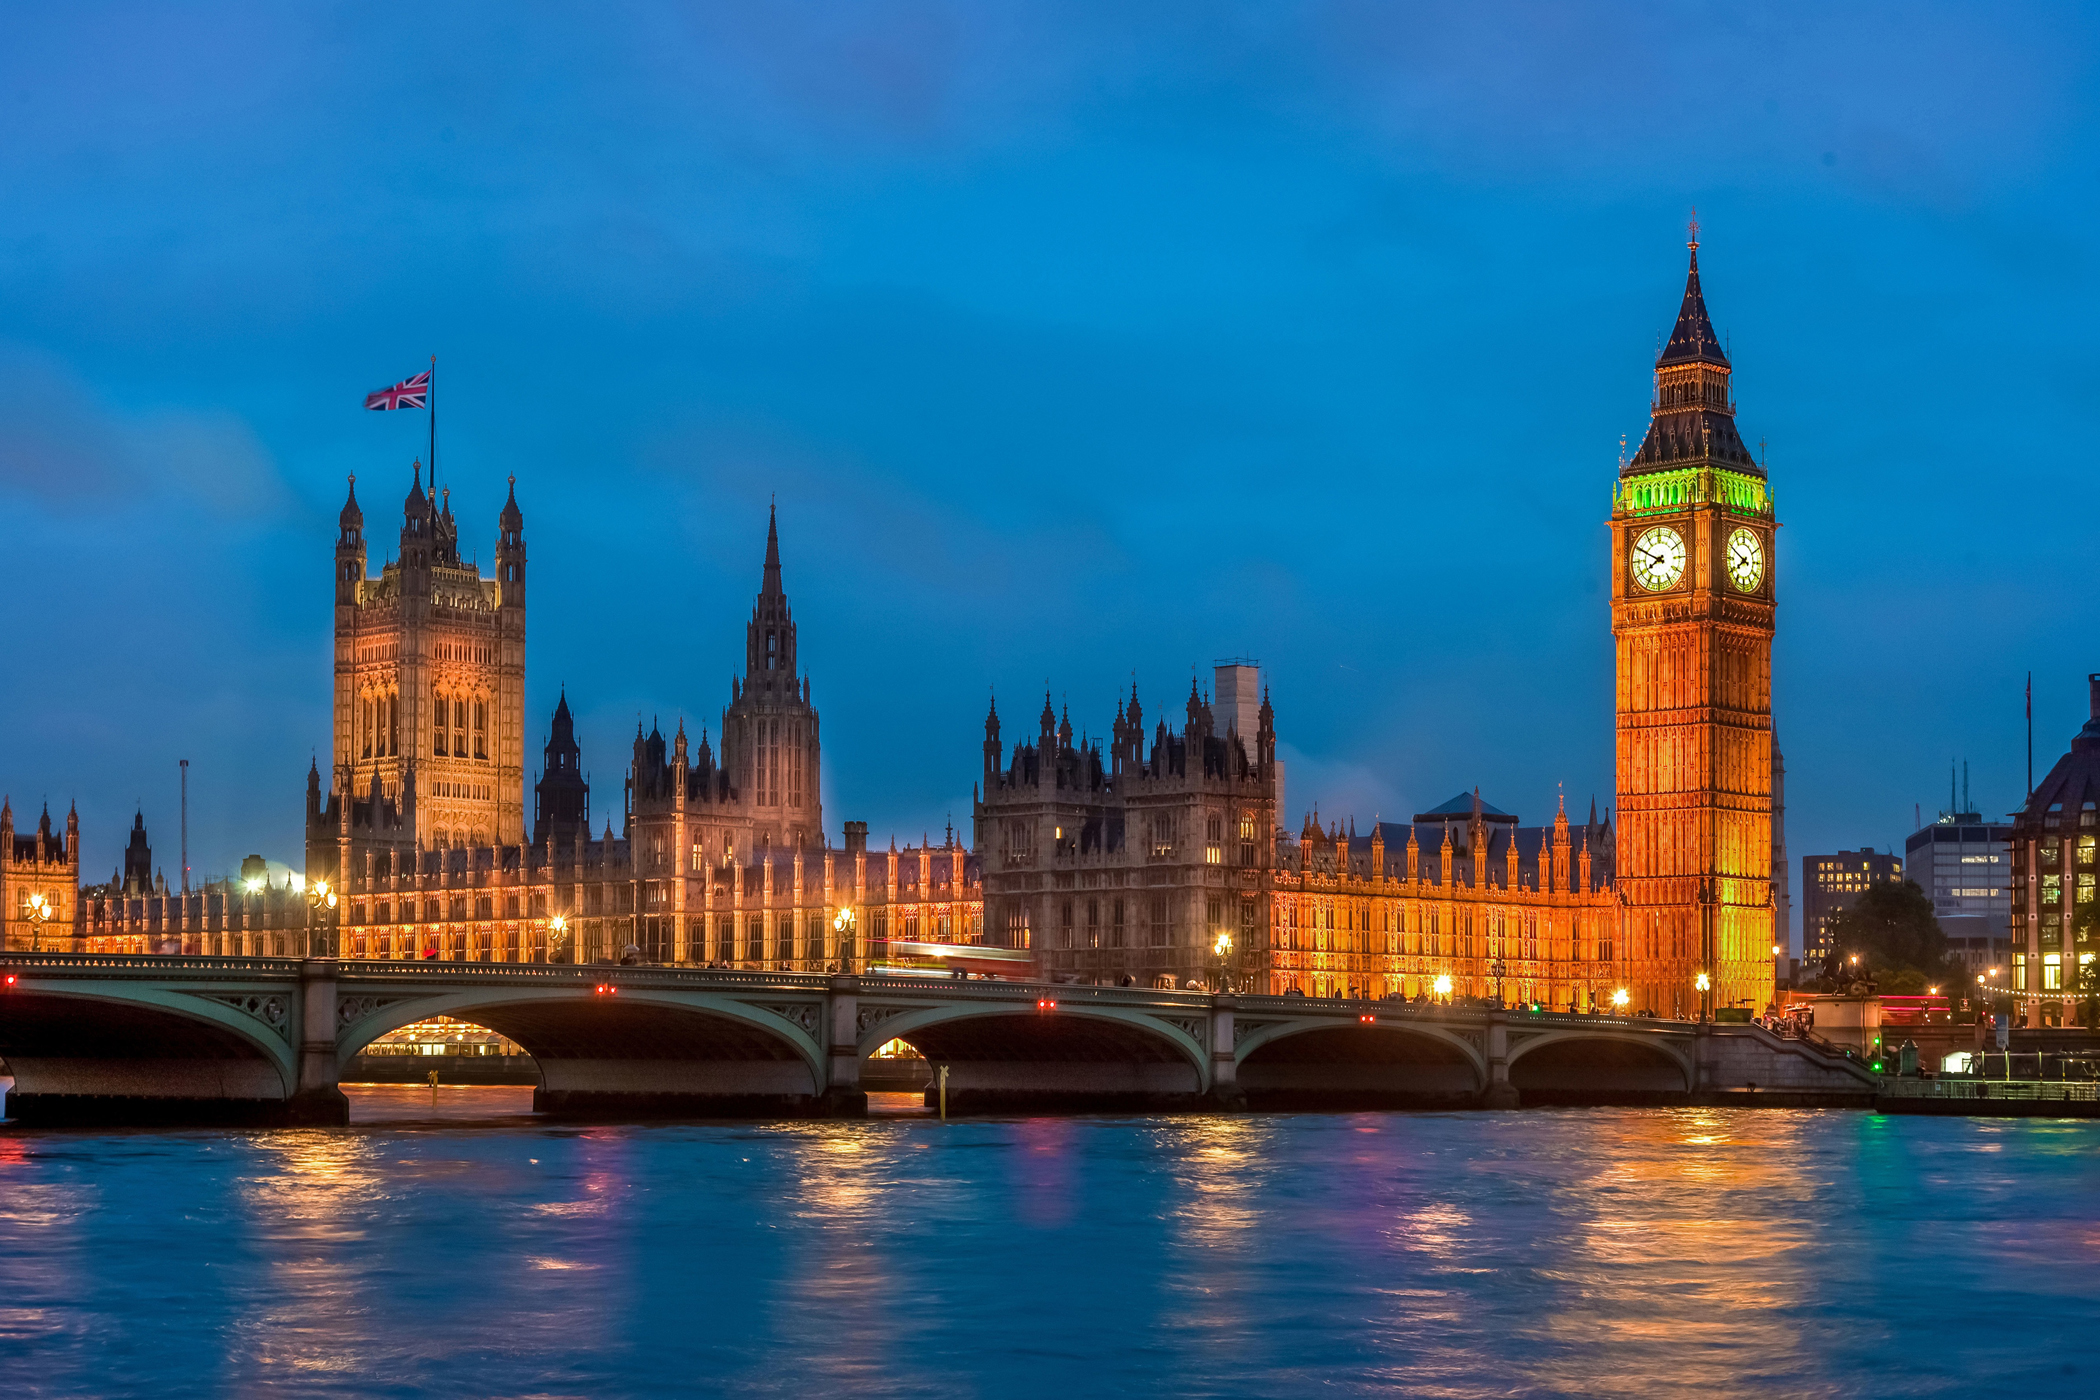 Houses of Parliament, Big Ben and Westminster bridge, London